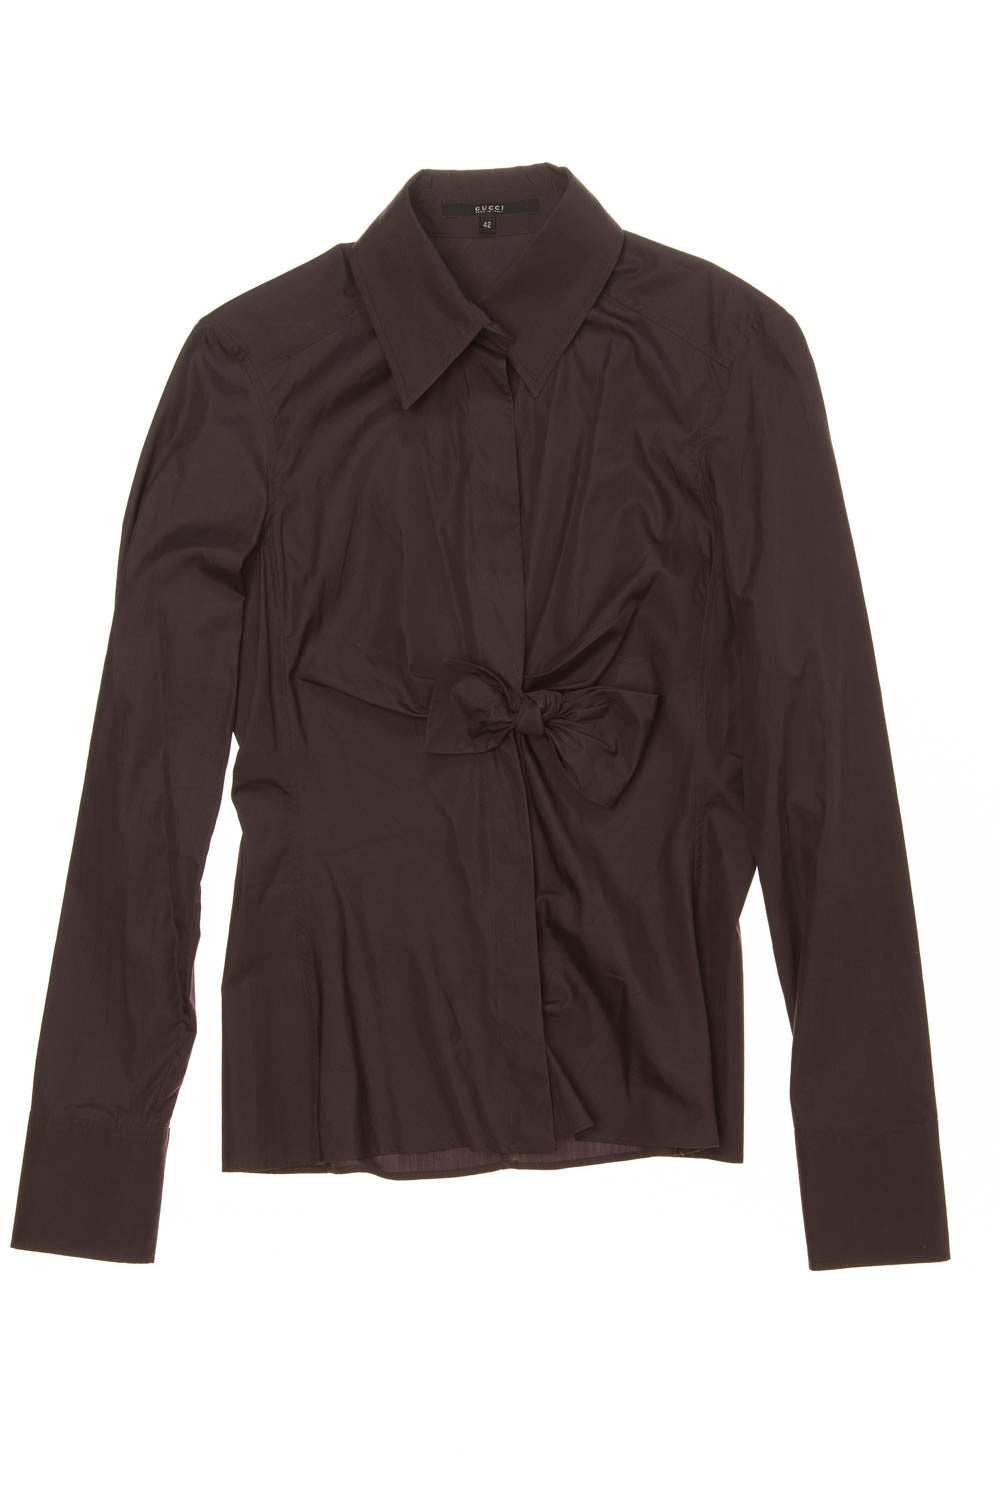 Iconic Tom Ford for Gucci - Eggplant Long Sleeve Button Up Blouse with Bow - IT 42